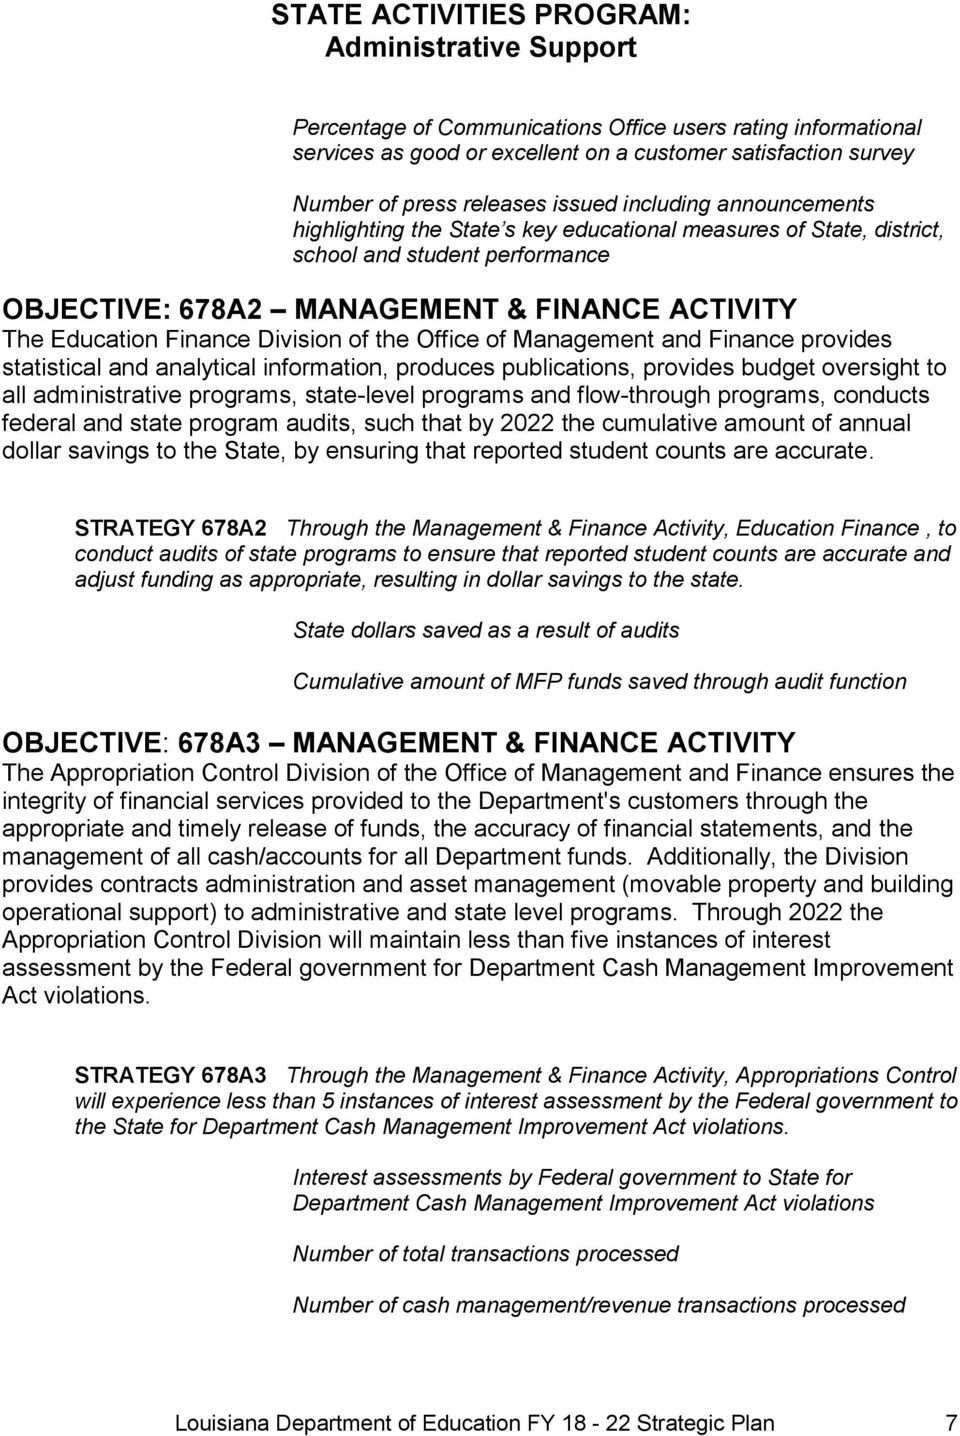 Education Finance Division of the Office of Management and Finance provides statistical and analytical information, produces publications, provides budget oversight to all administrative programs,